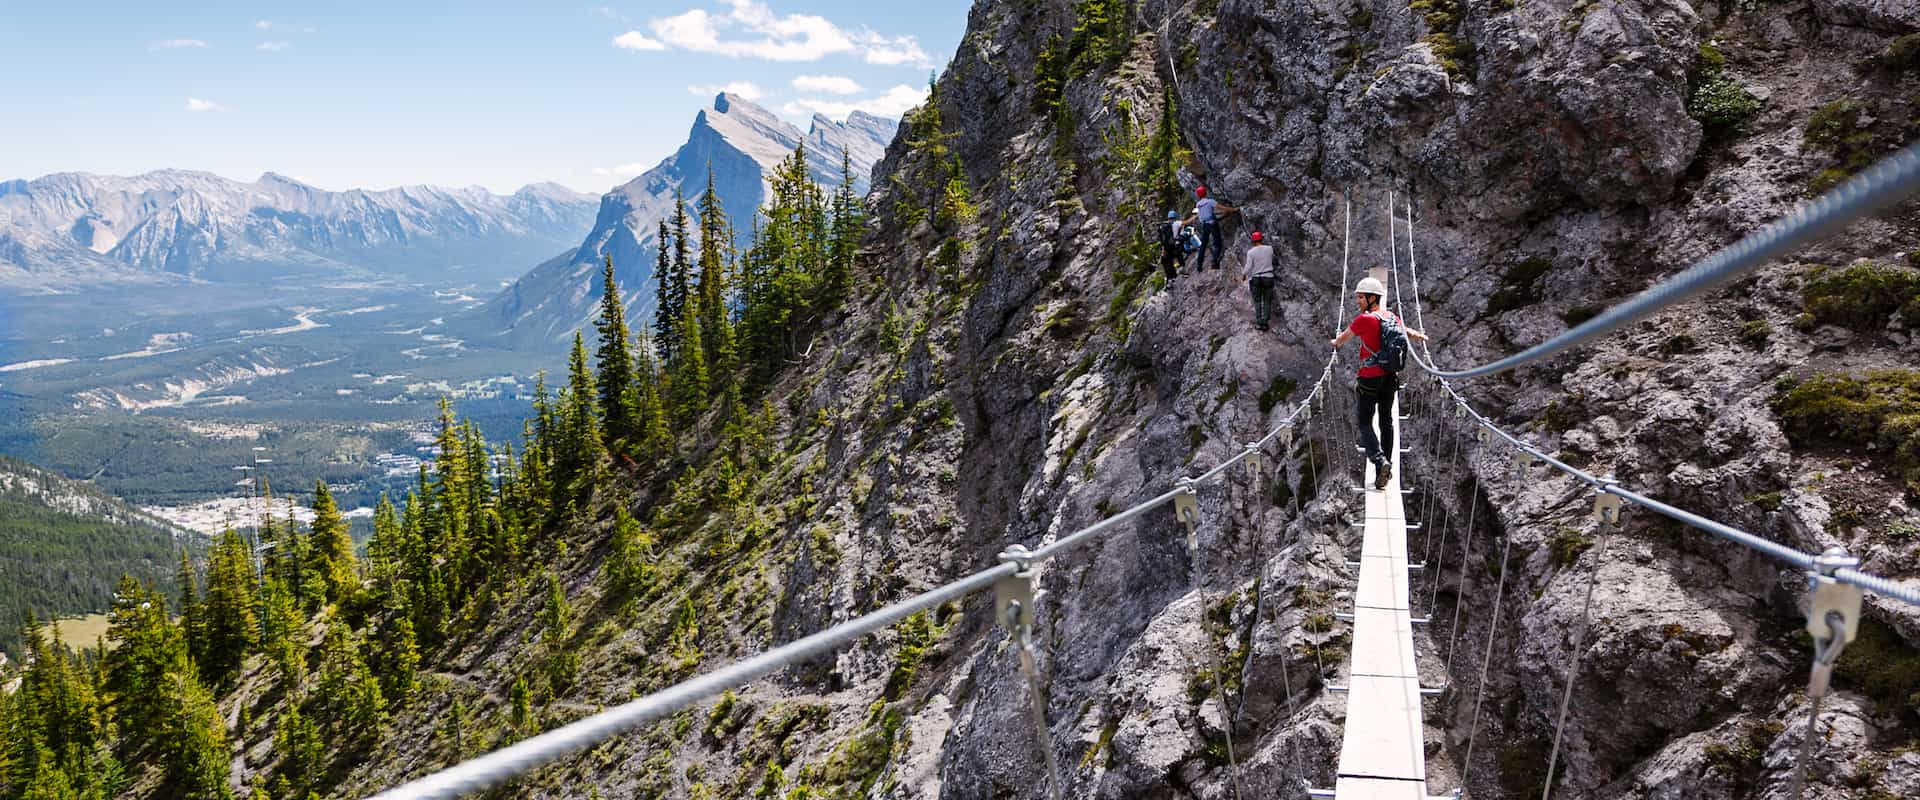 Cross a suspension bridge on the Mount Norquay Via Ferrata Explorer Route